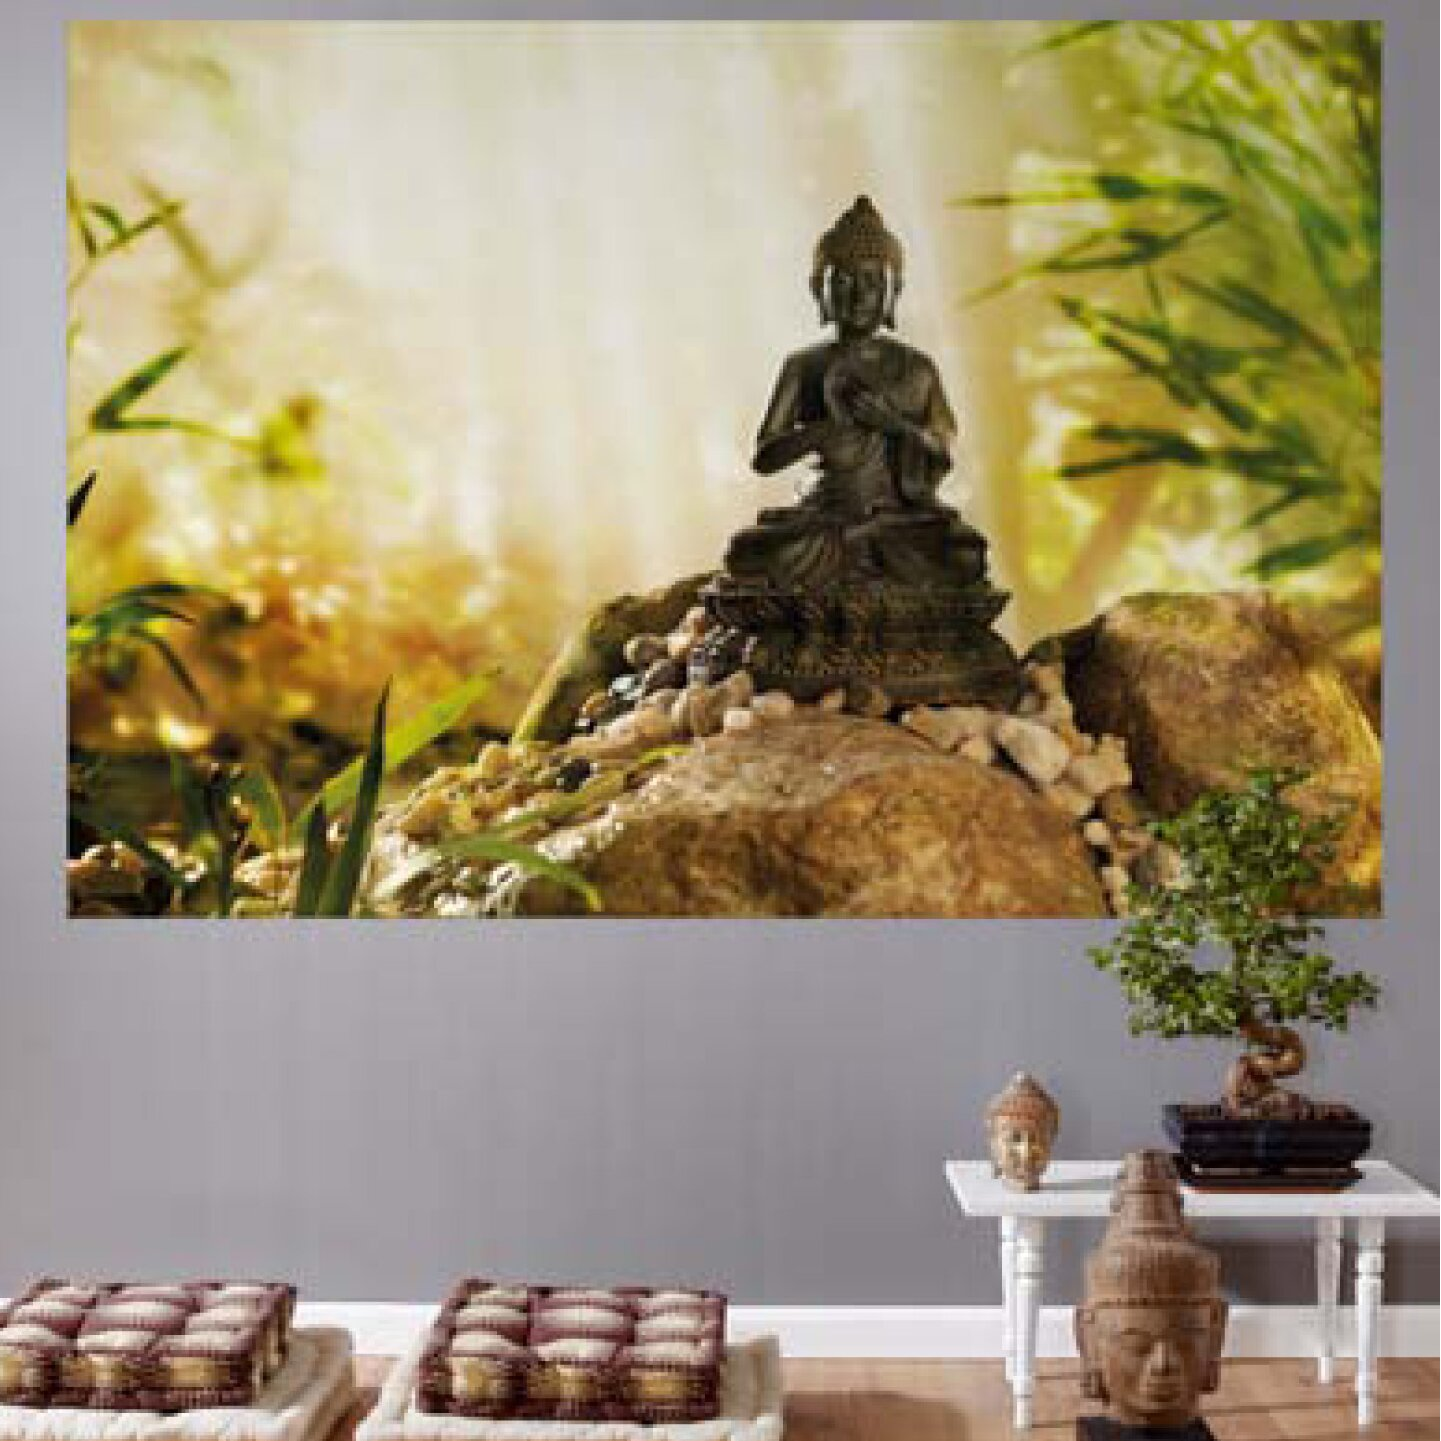 Brewster home fashions komar buddha wall mural reviews for Brewster home fashions wall mural